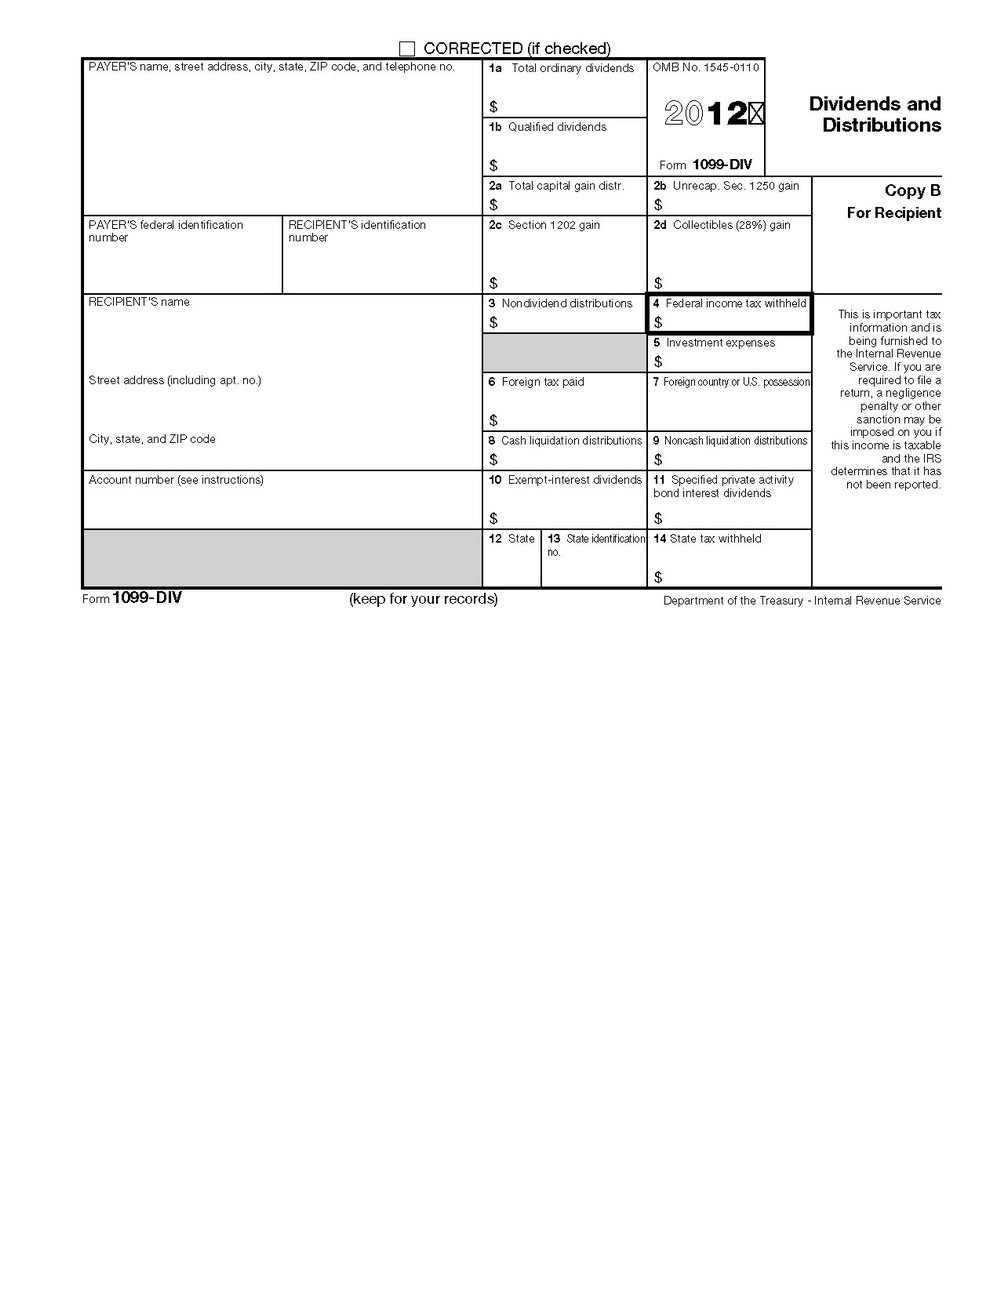 Form 1096 Fillable 2016